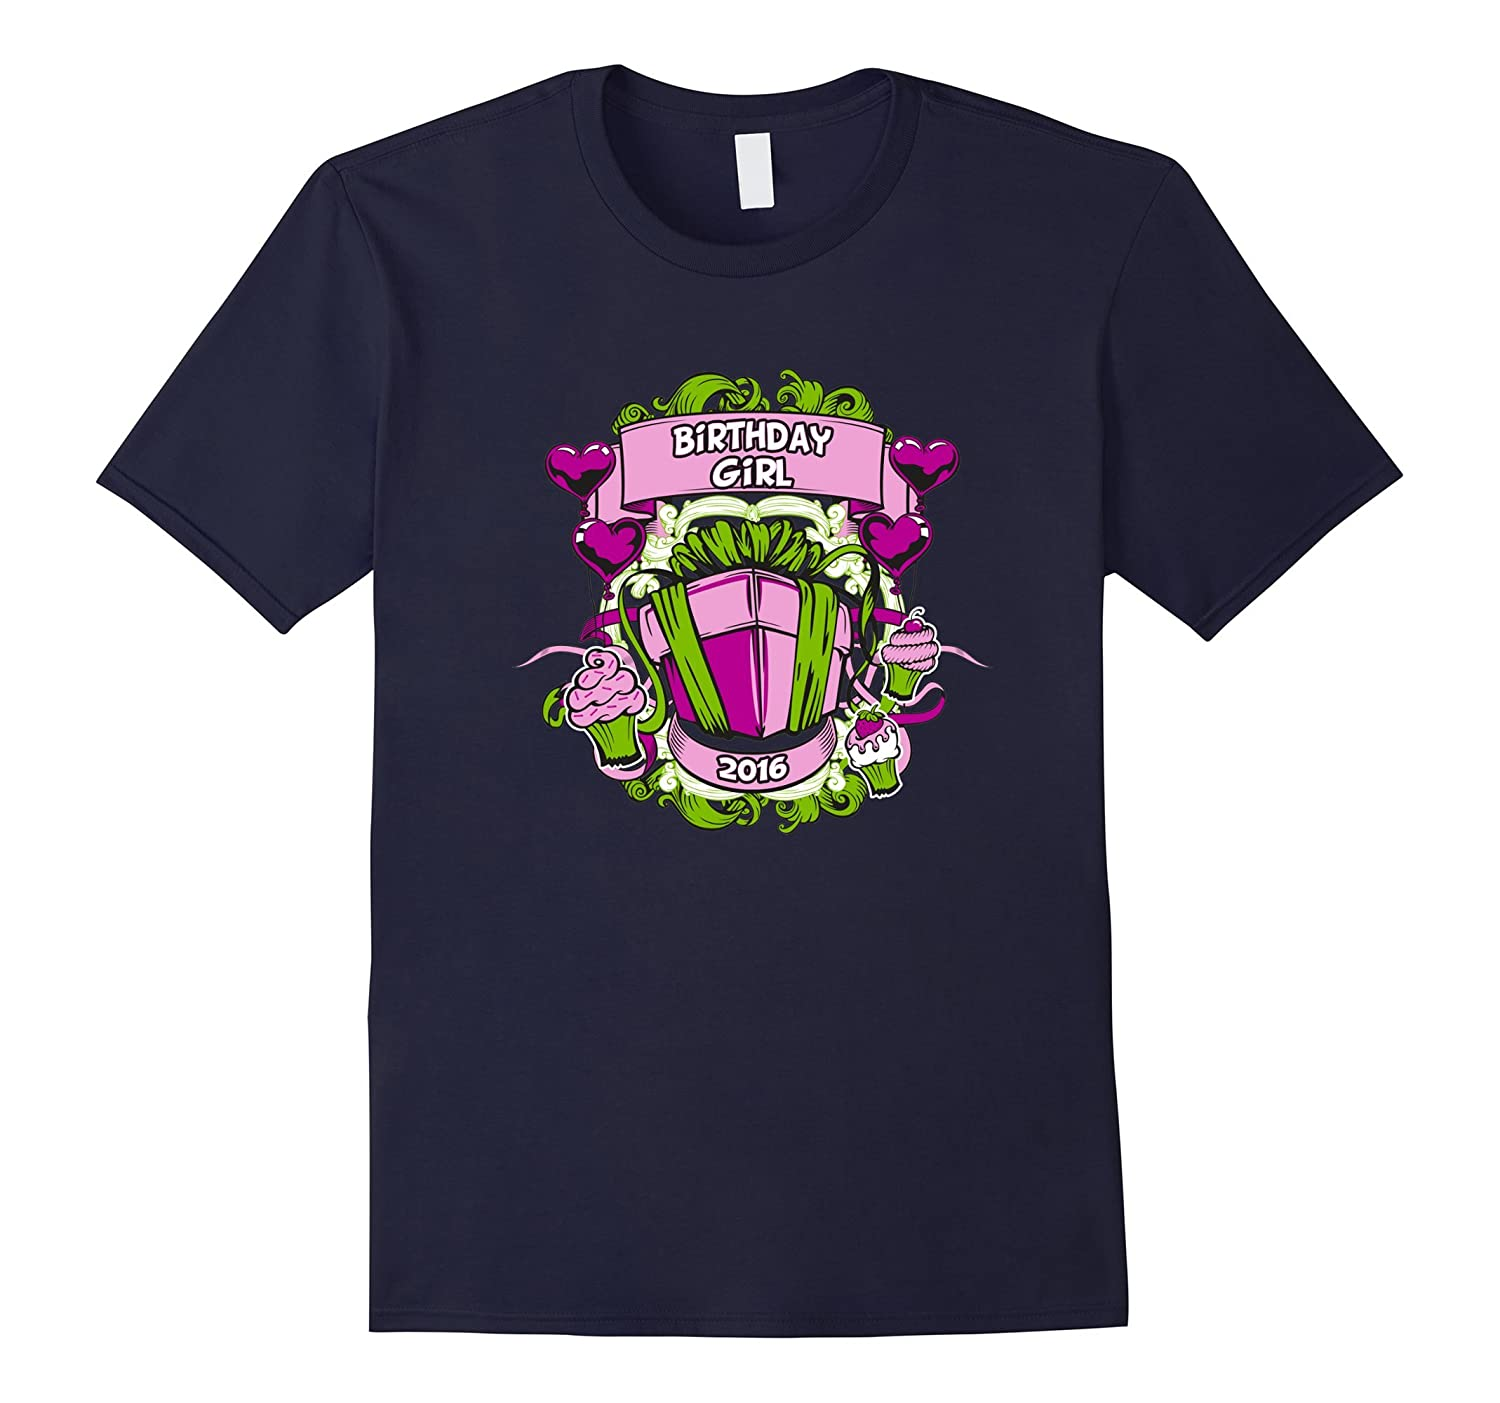 Birthday Girl 2016 T Shirts Birthday Gifts Idea For Girls-Art